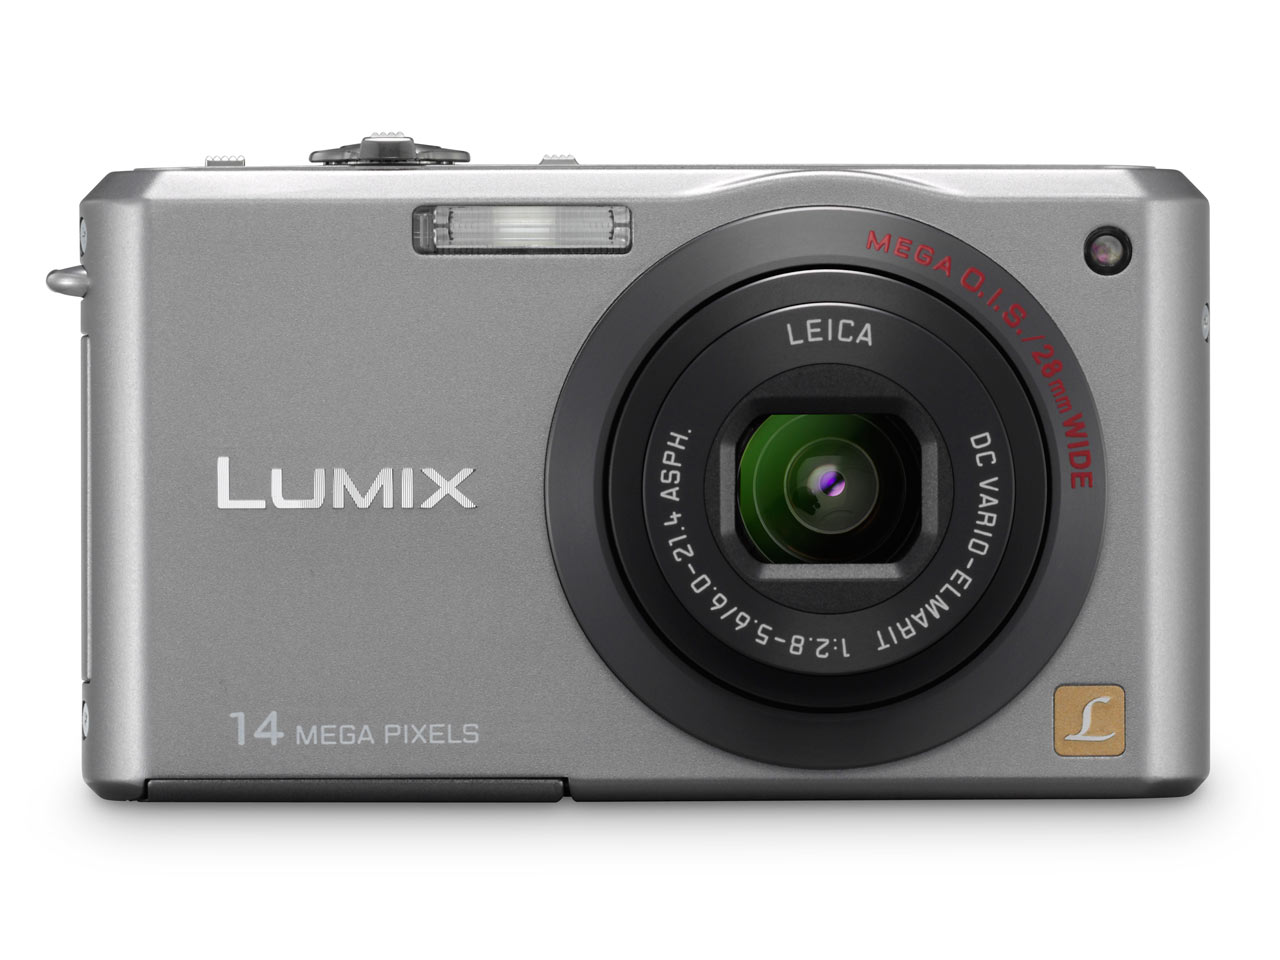 panasonic lumix dmc fx150 digital photography review rh dpreview com Panasonic Lumix Battery Charger Panasonic Lumix Camera